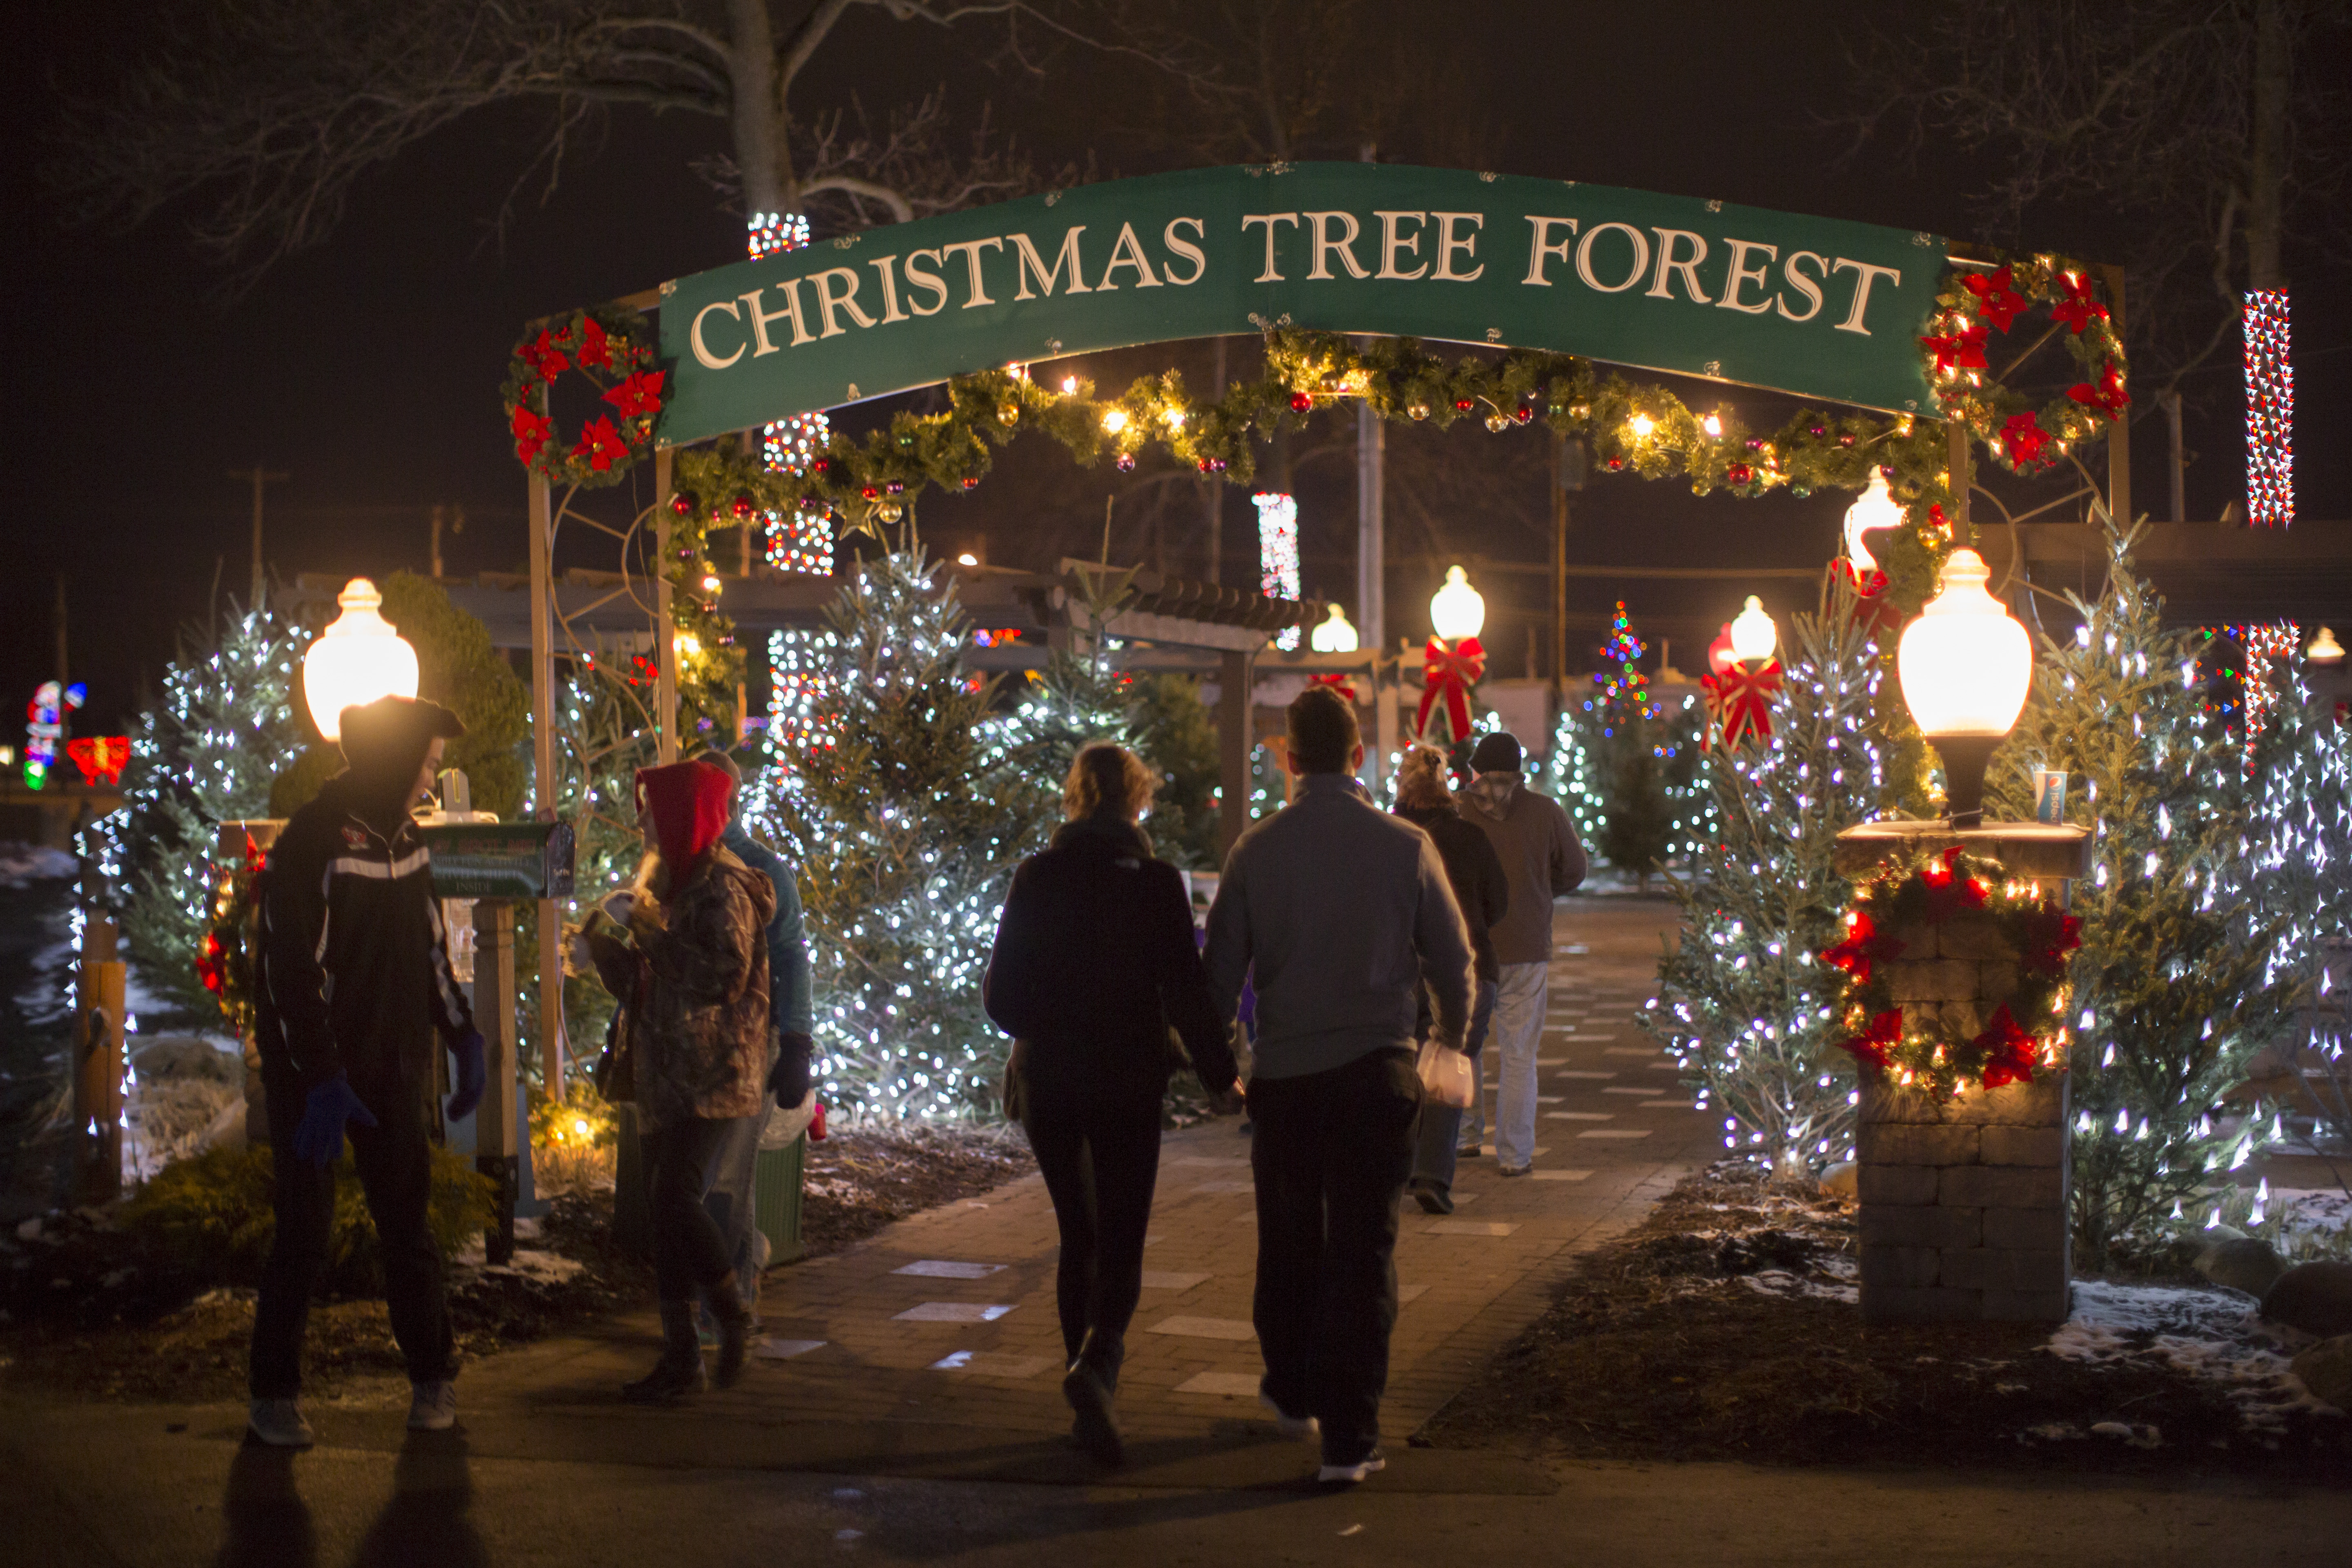 The Hamburg Fairgrounds Festival of Lights is a great place to take the family for the holidays.